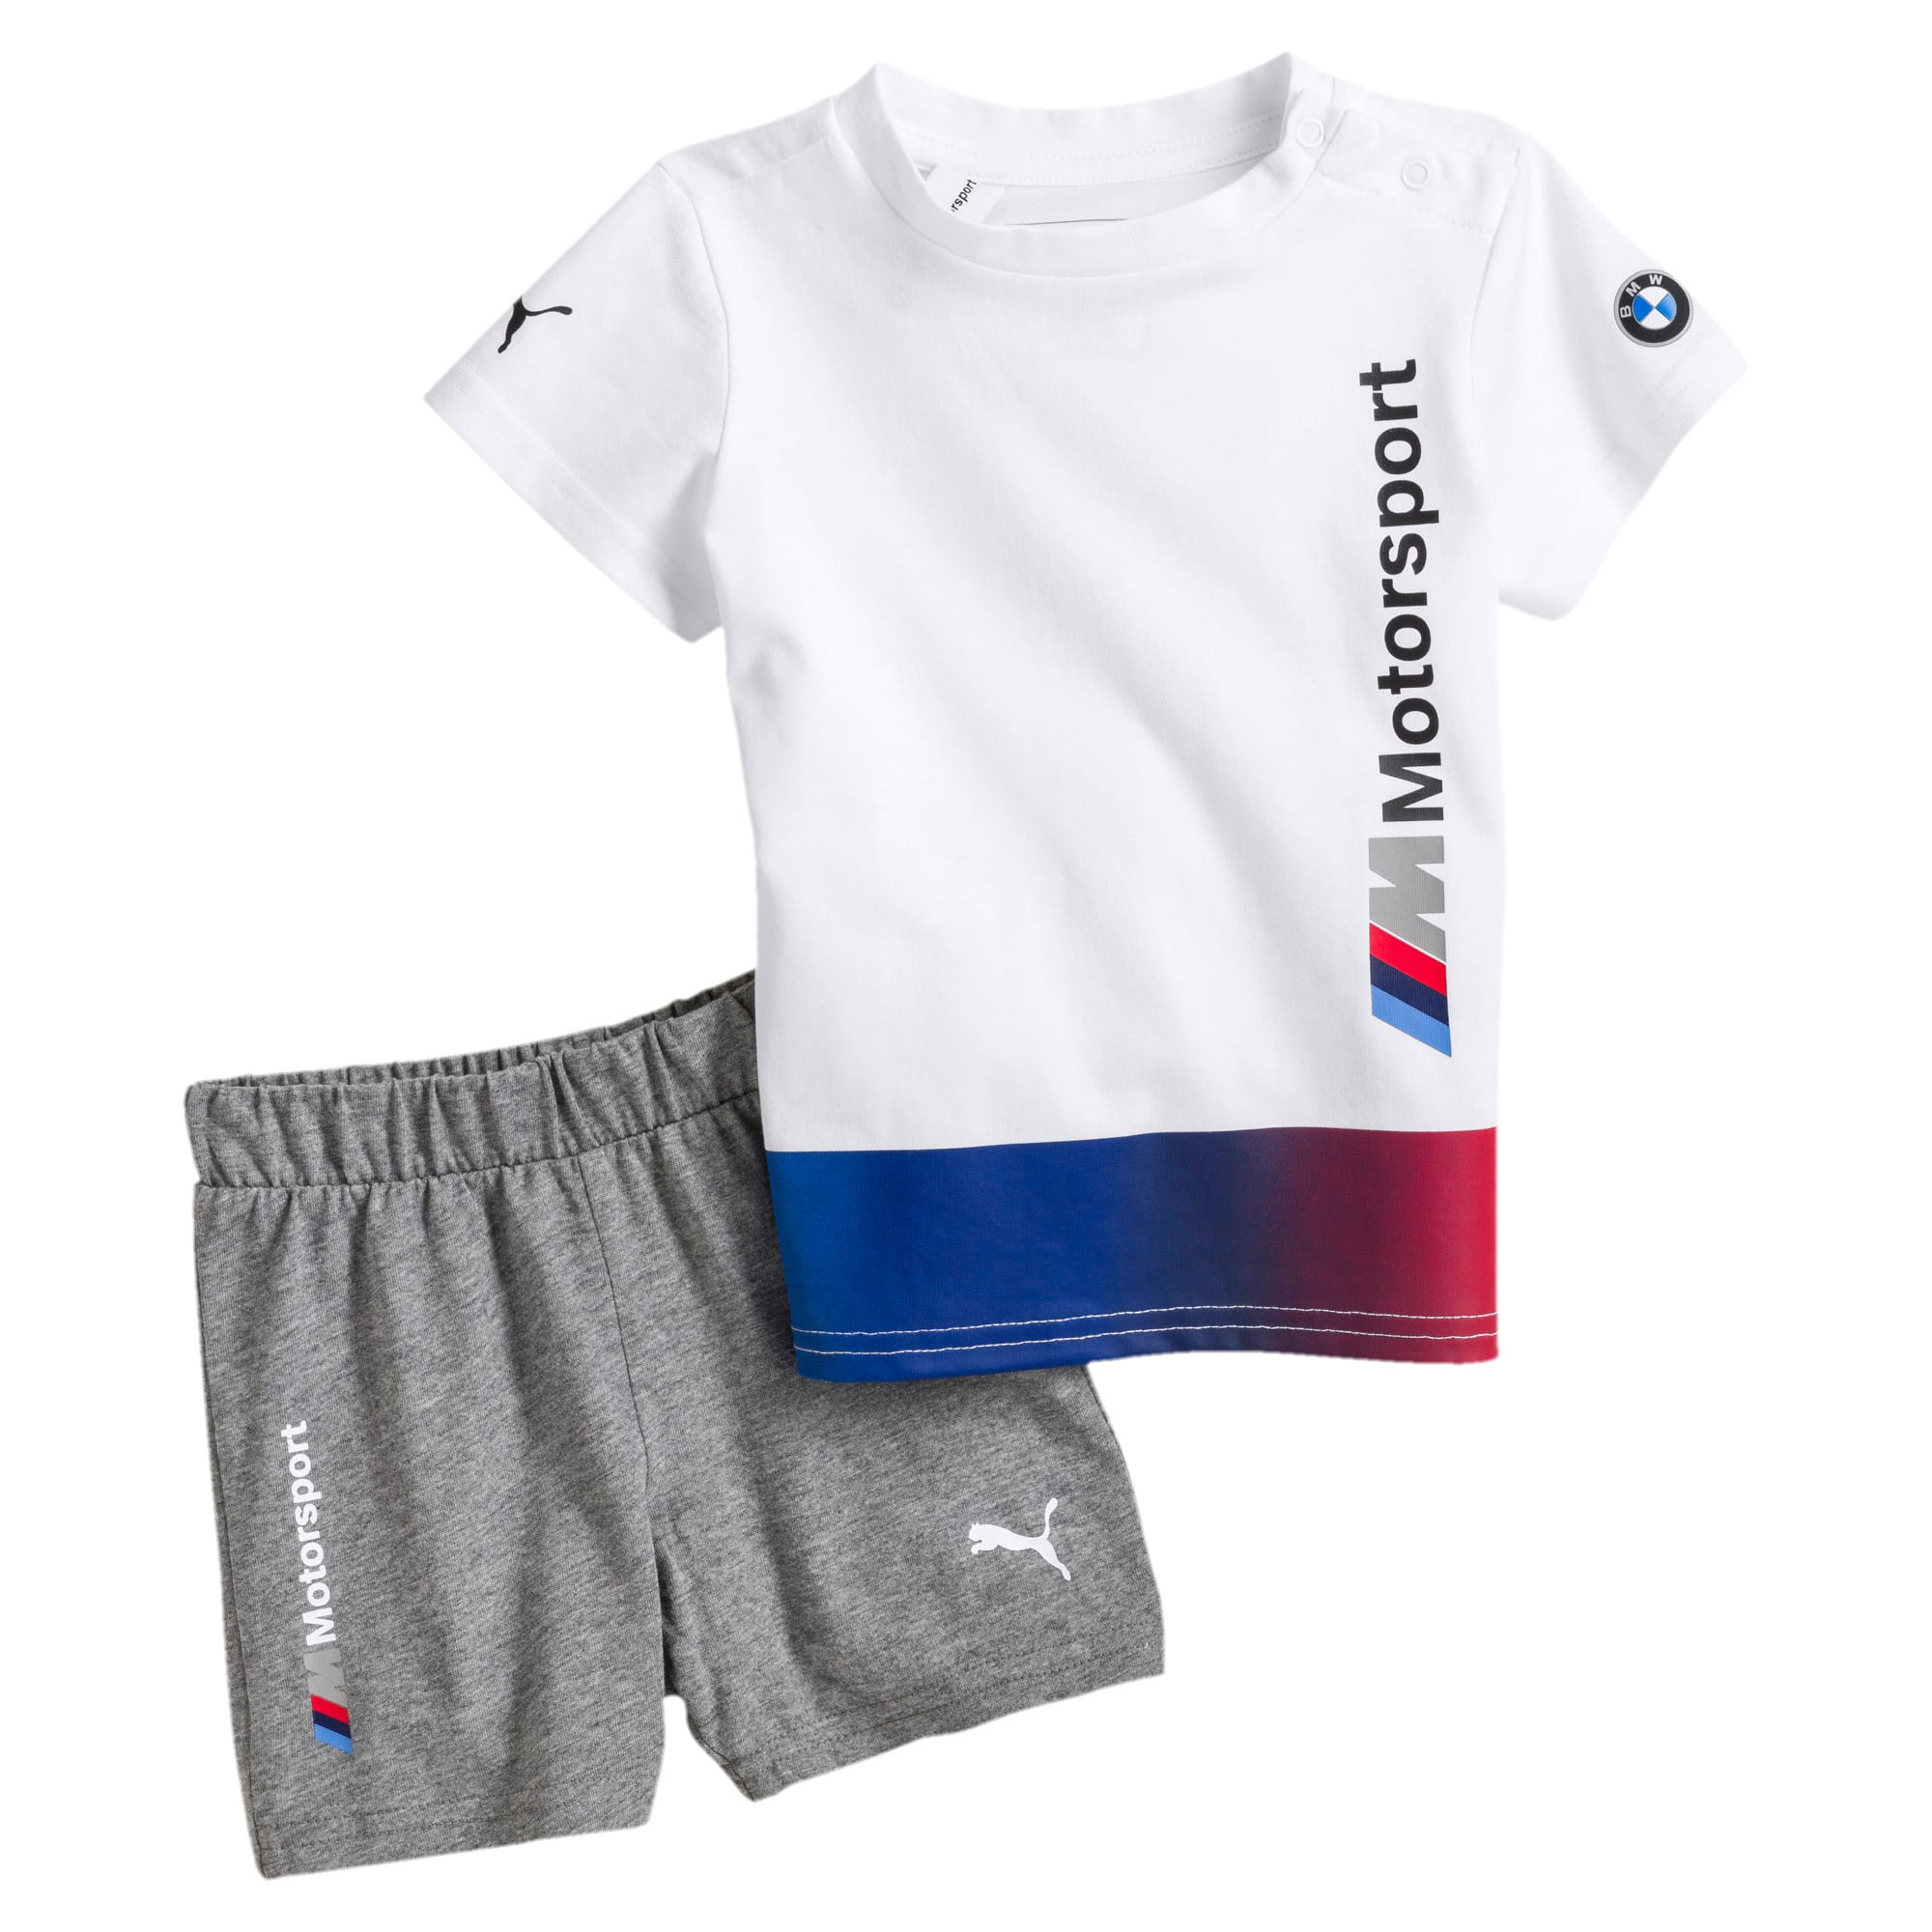 Thumbnail 1 of BMW M Motorsport Infant + Toddler Set, Puma White, medium